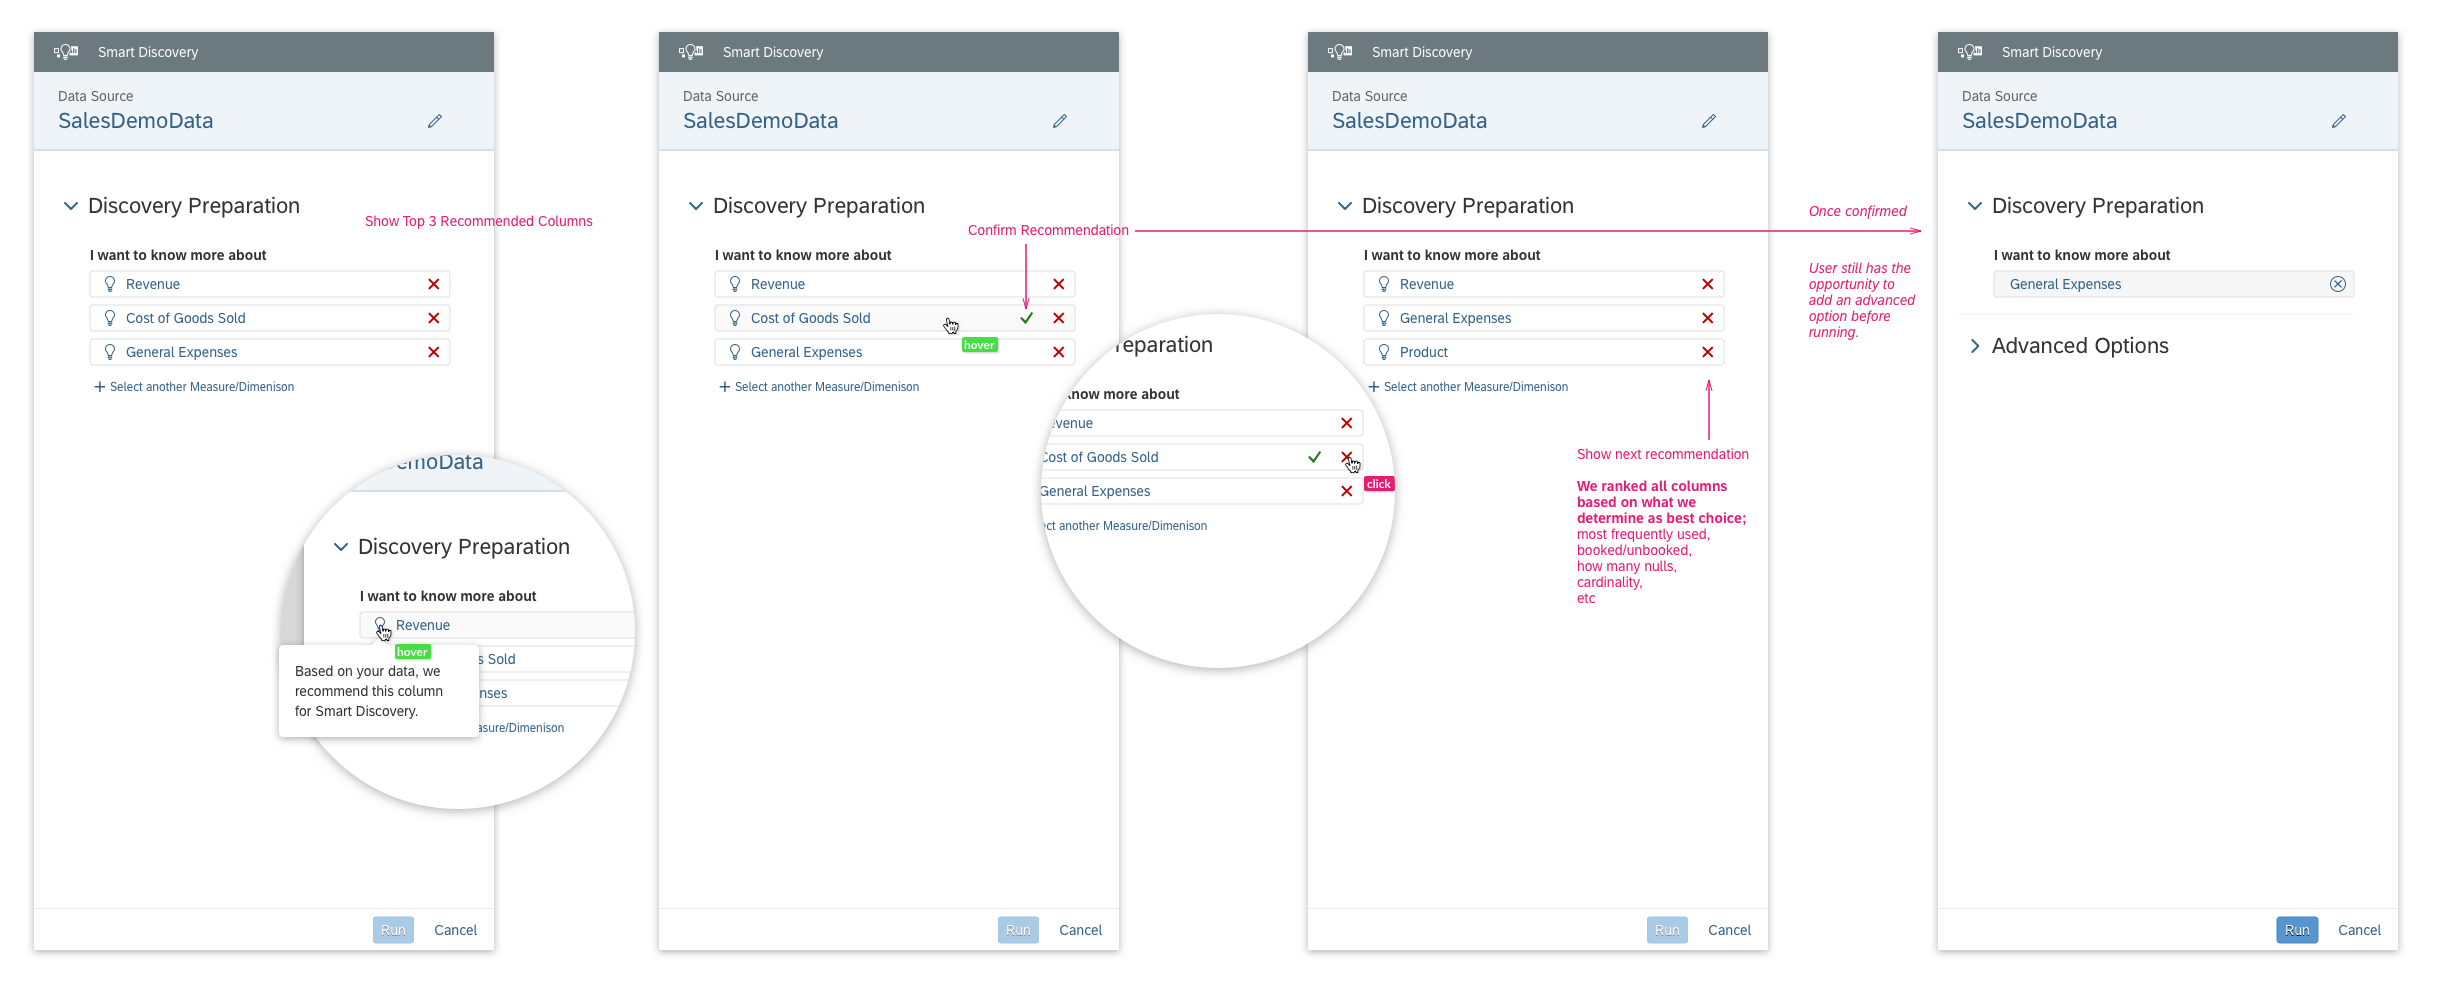 Wireframe: Interaction pattern for recommending certain variables based on usage tracking and machine learning.